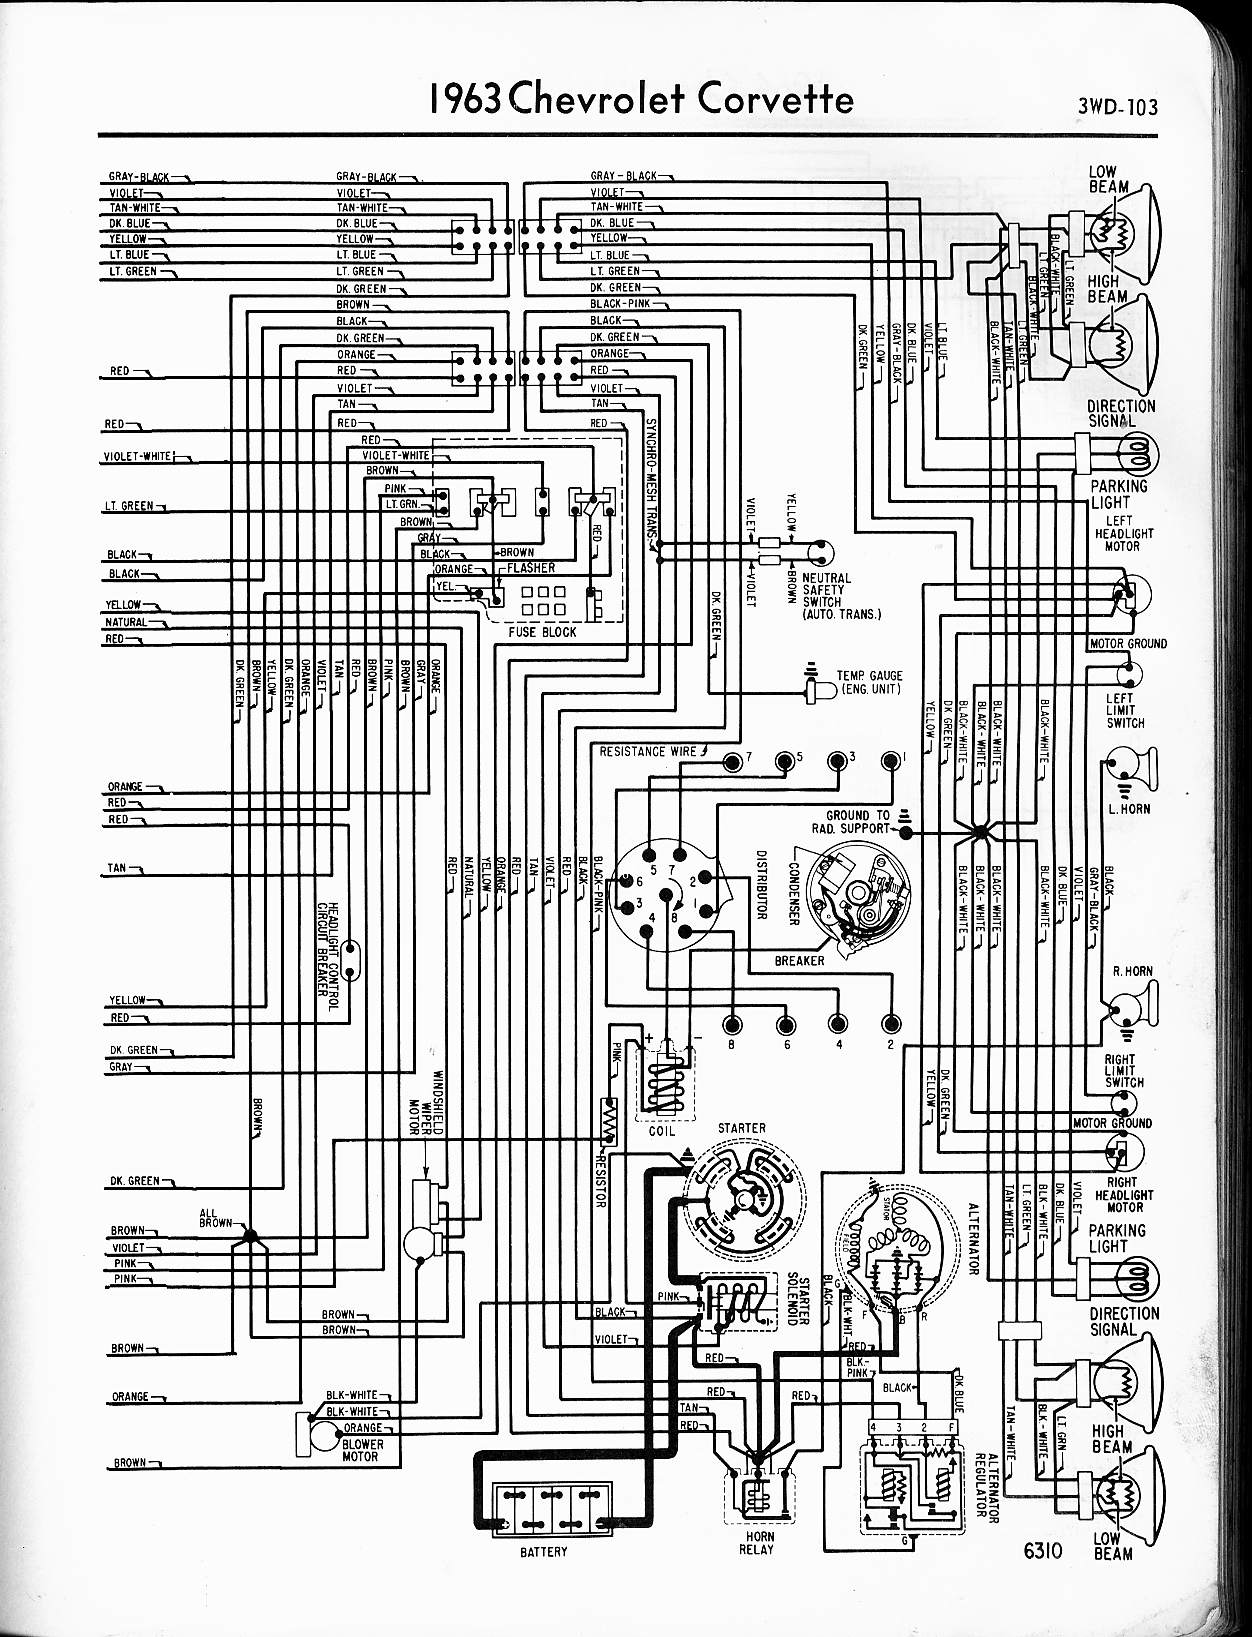 MWireChev63_3WD 103 57 65 chevy wiring diagrams 2002 corvette wiring diagrams at alyssarenee.co